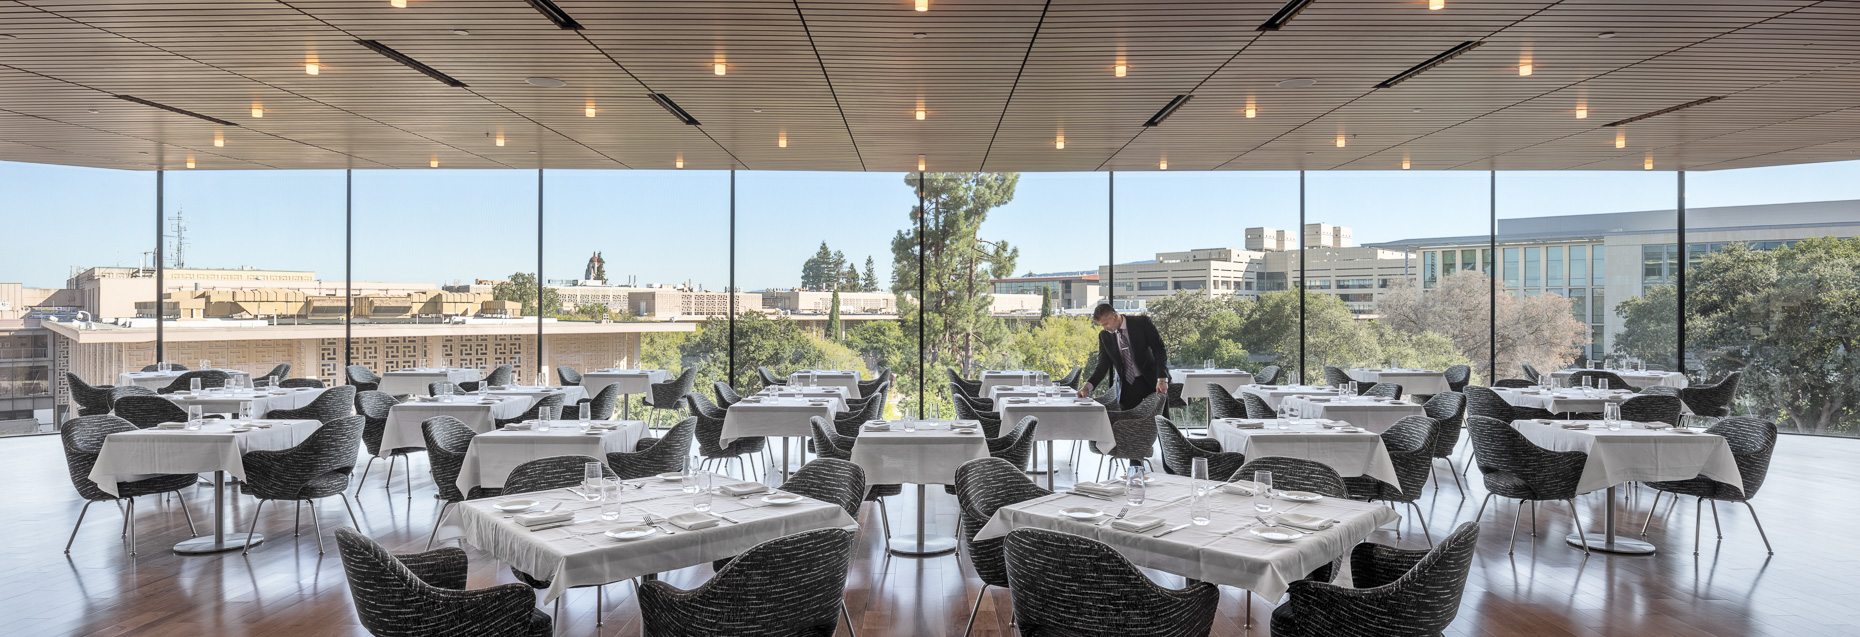 Stanford University Dining Services by Rafael Viñoly Architects photographed by Brad Feinknopf based in Columbus, Ohio